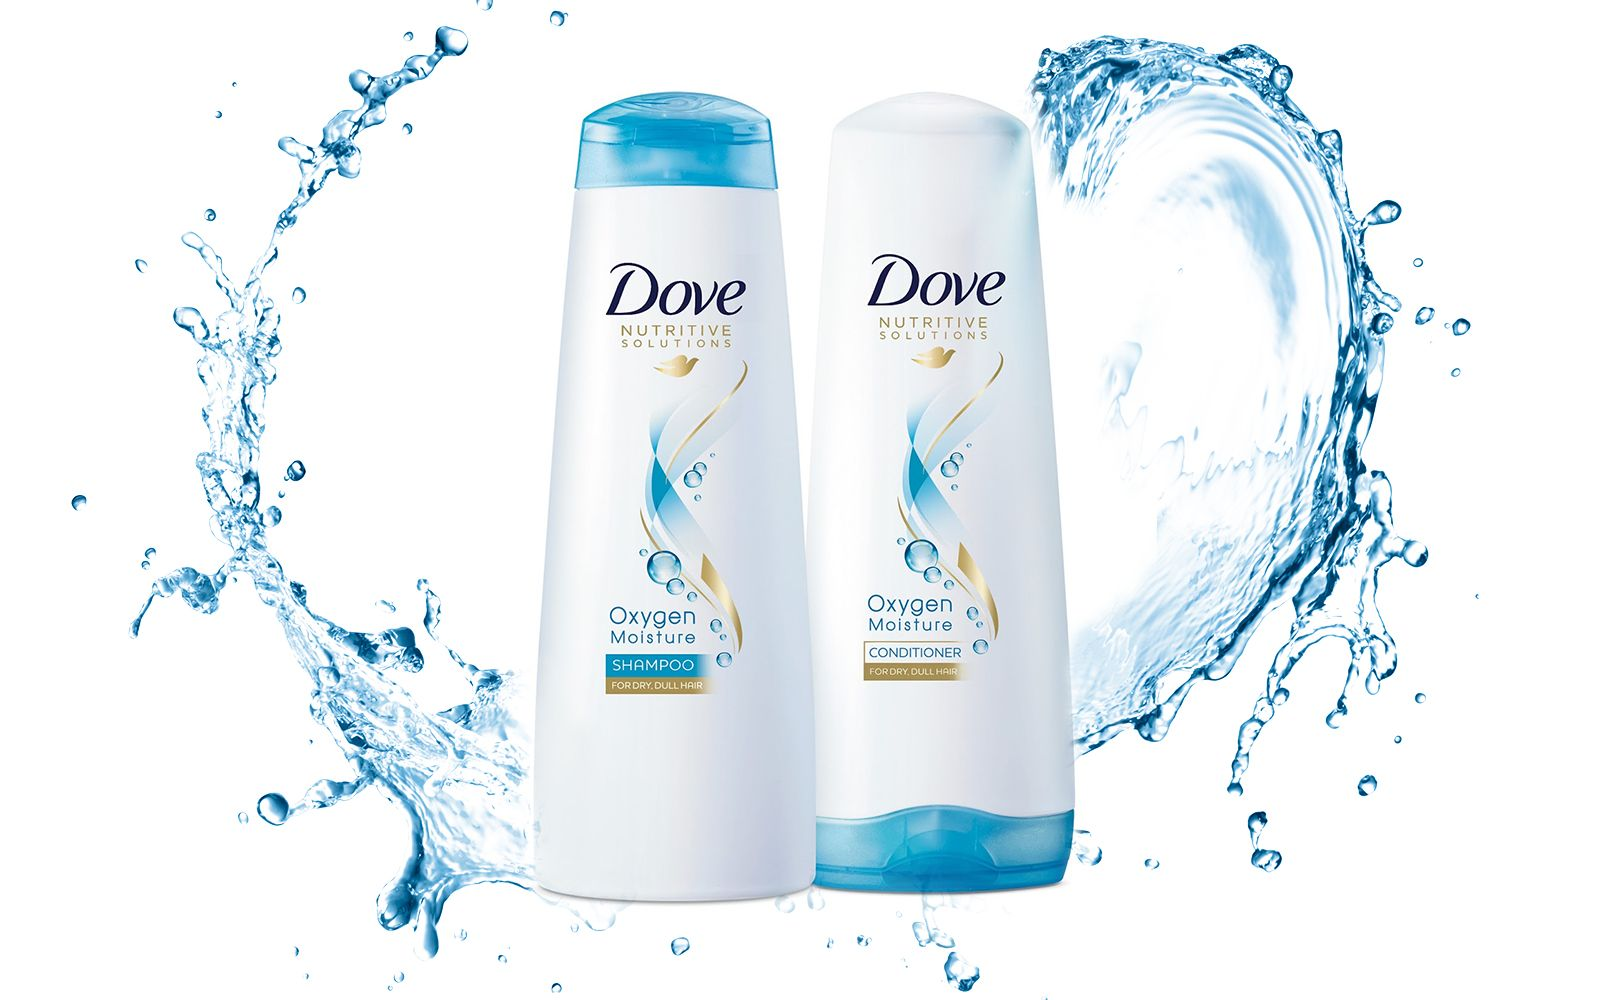 Dove Oxygen Moisture Shampoo and Conditioner Review